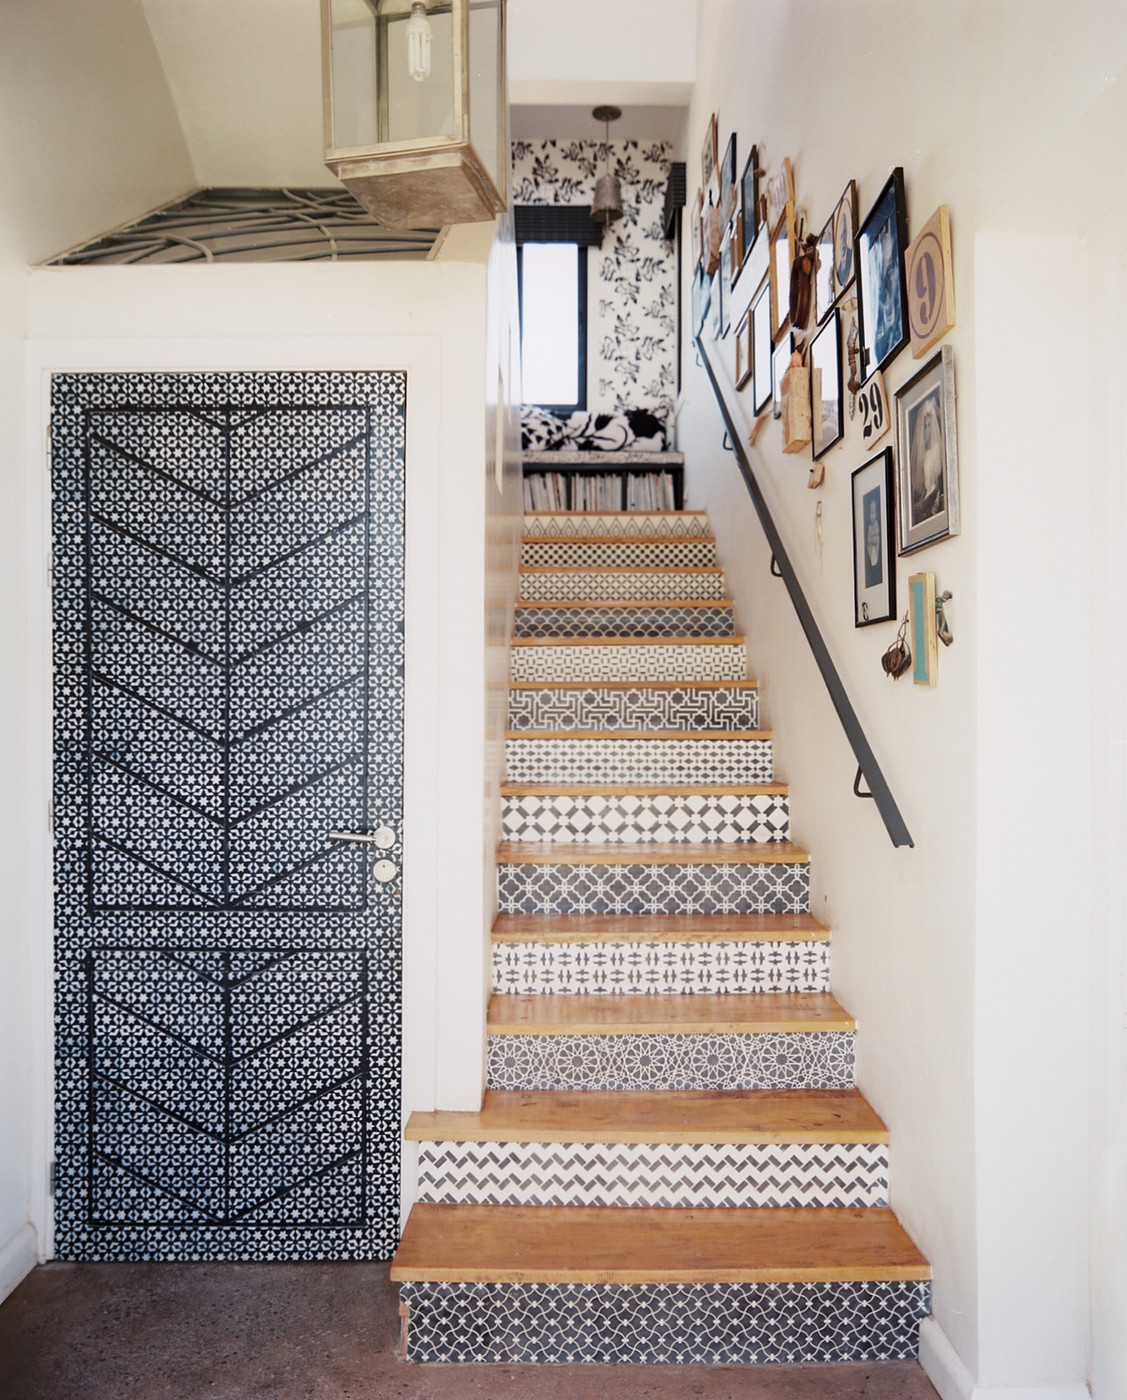 Wallpapered Stair Risers   Do It Yourself Projects   Lonny